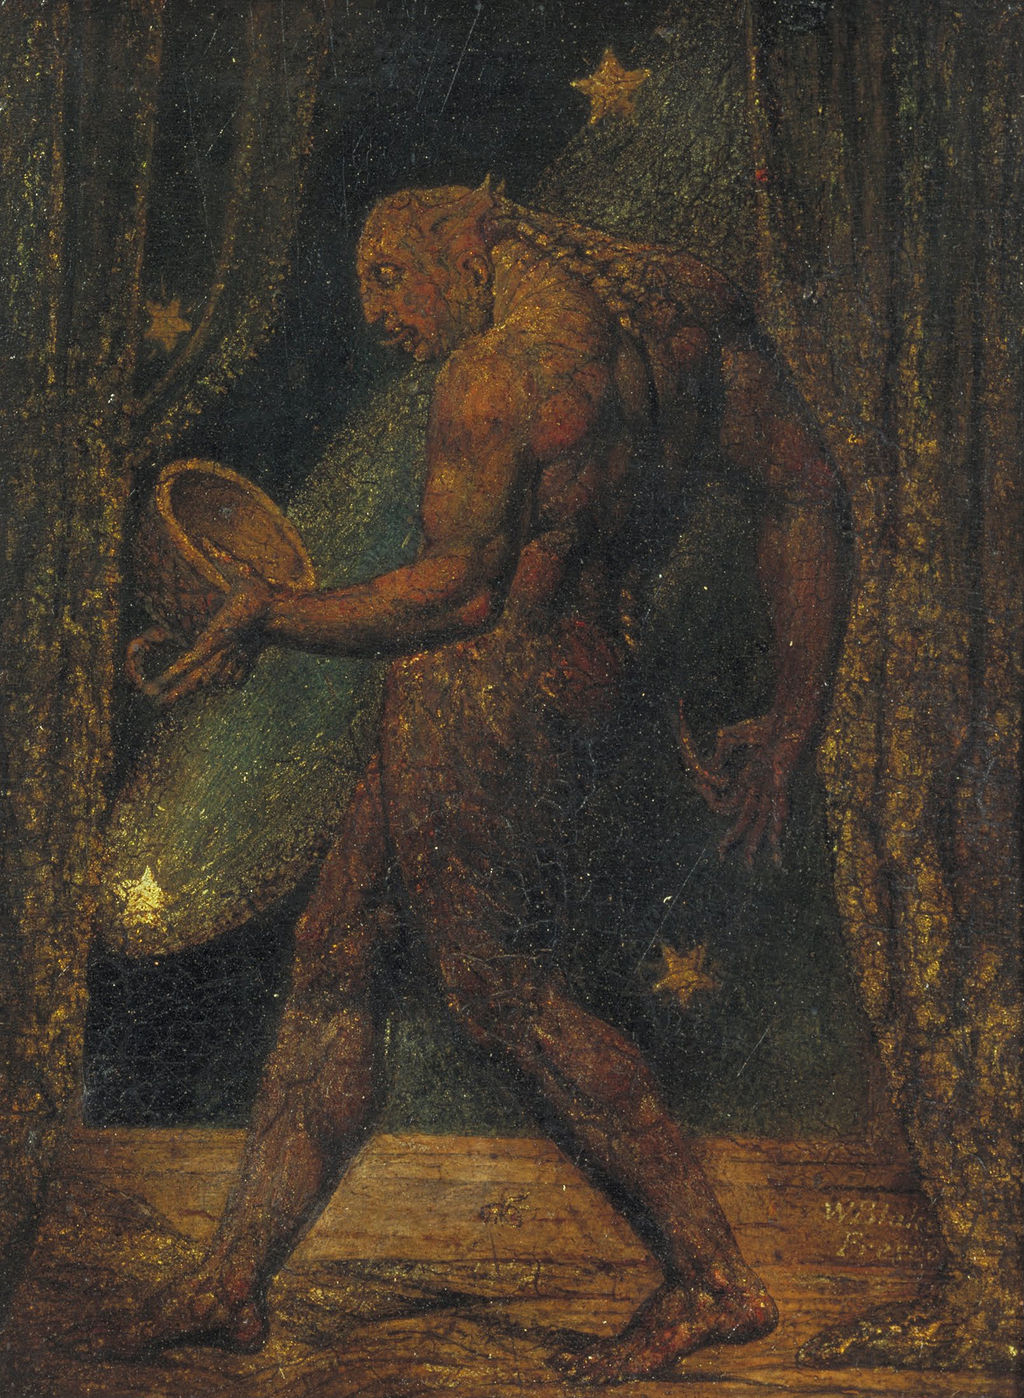 William Blake: The Ghost of a Flea (c. 1819–20)